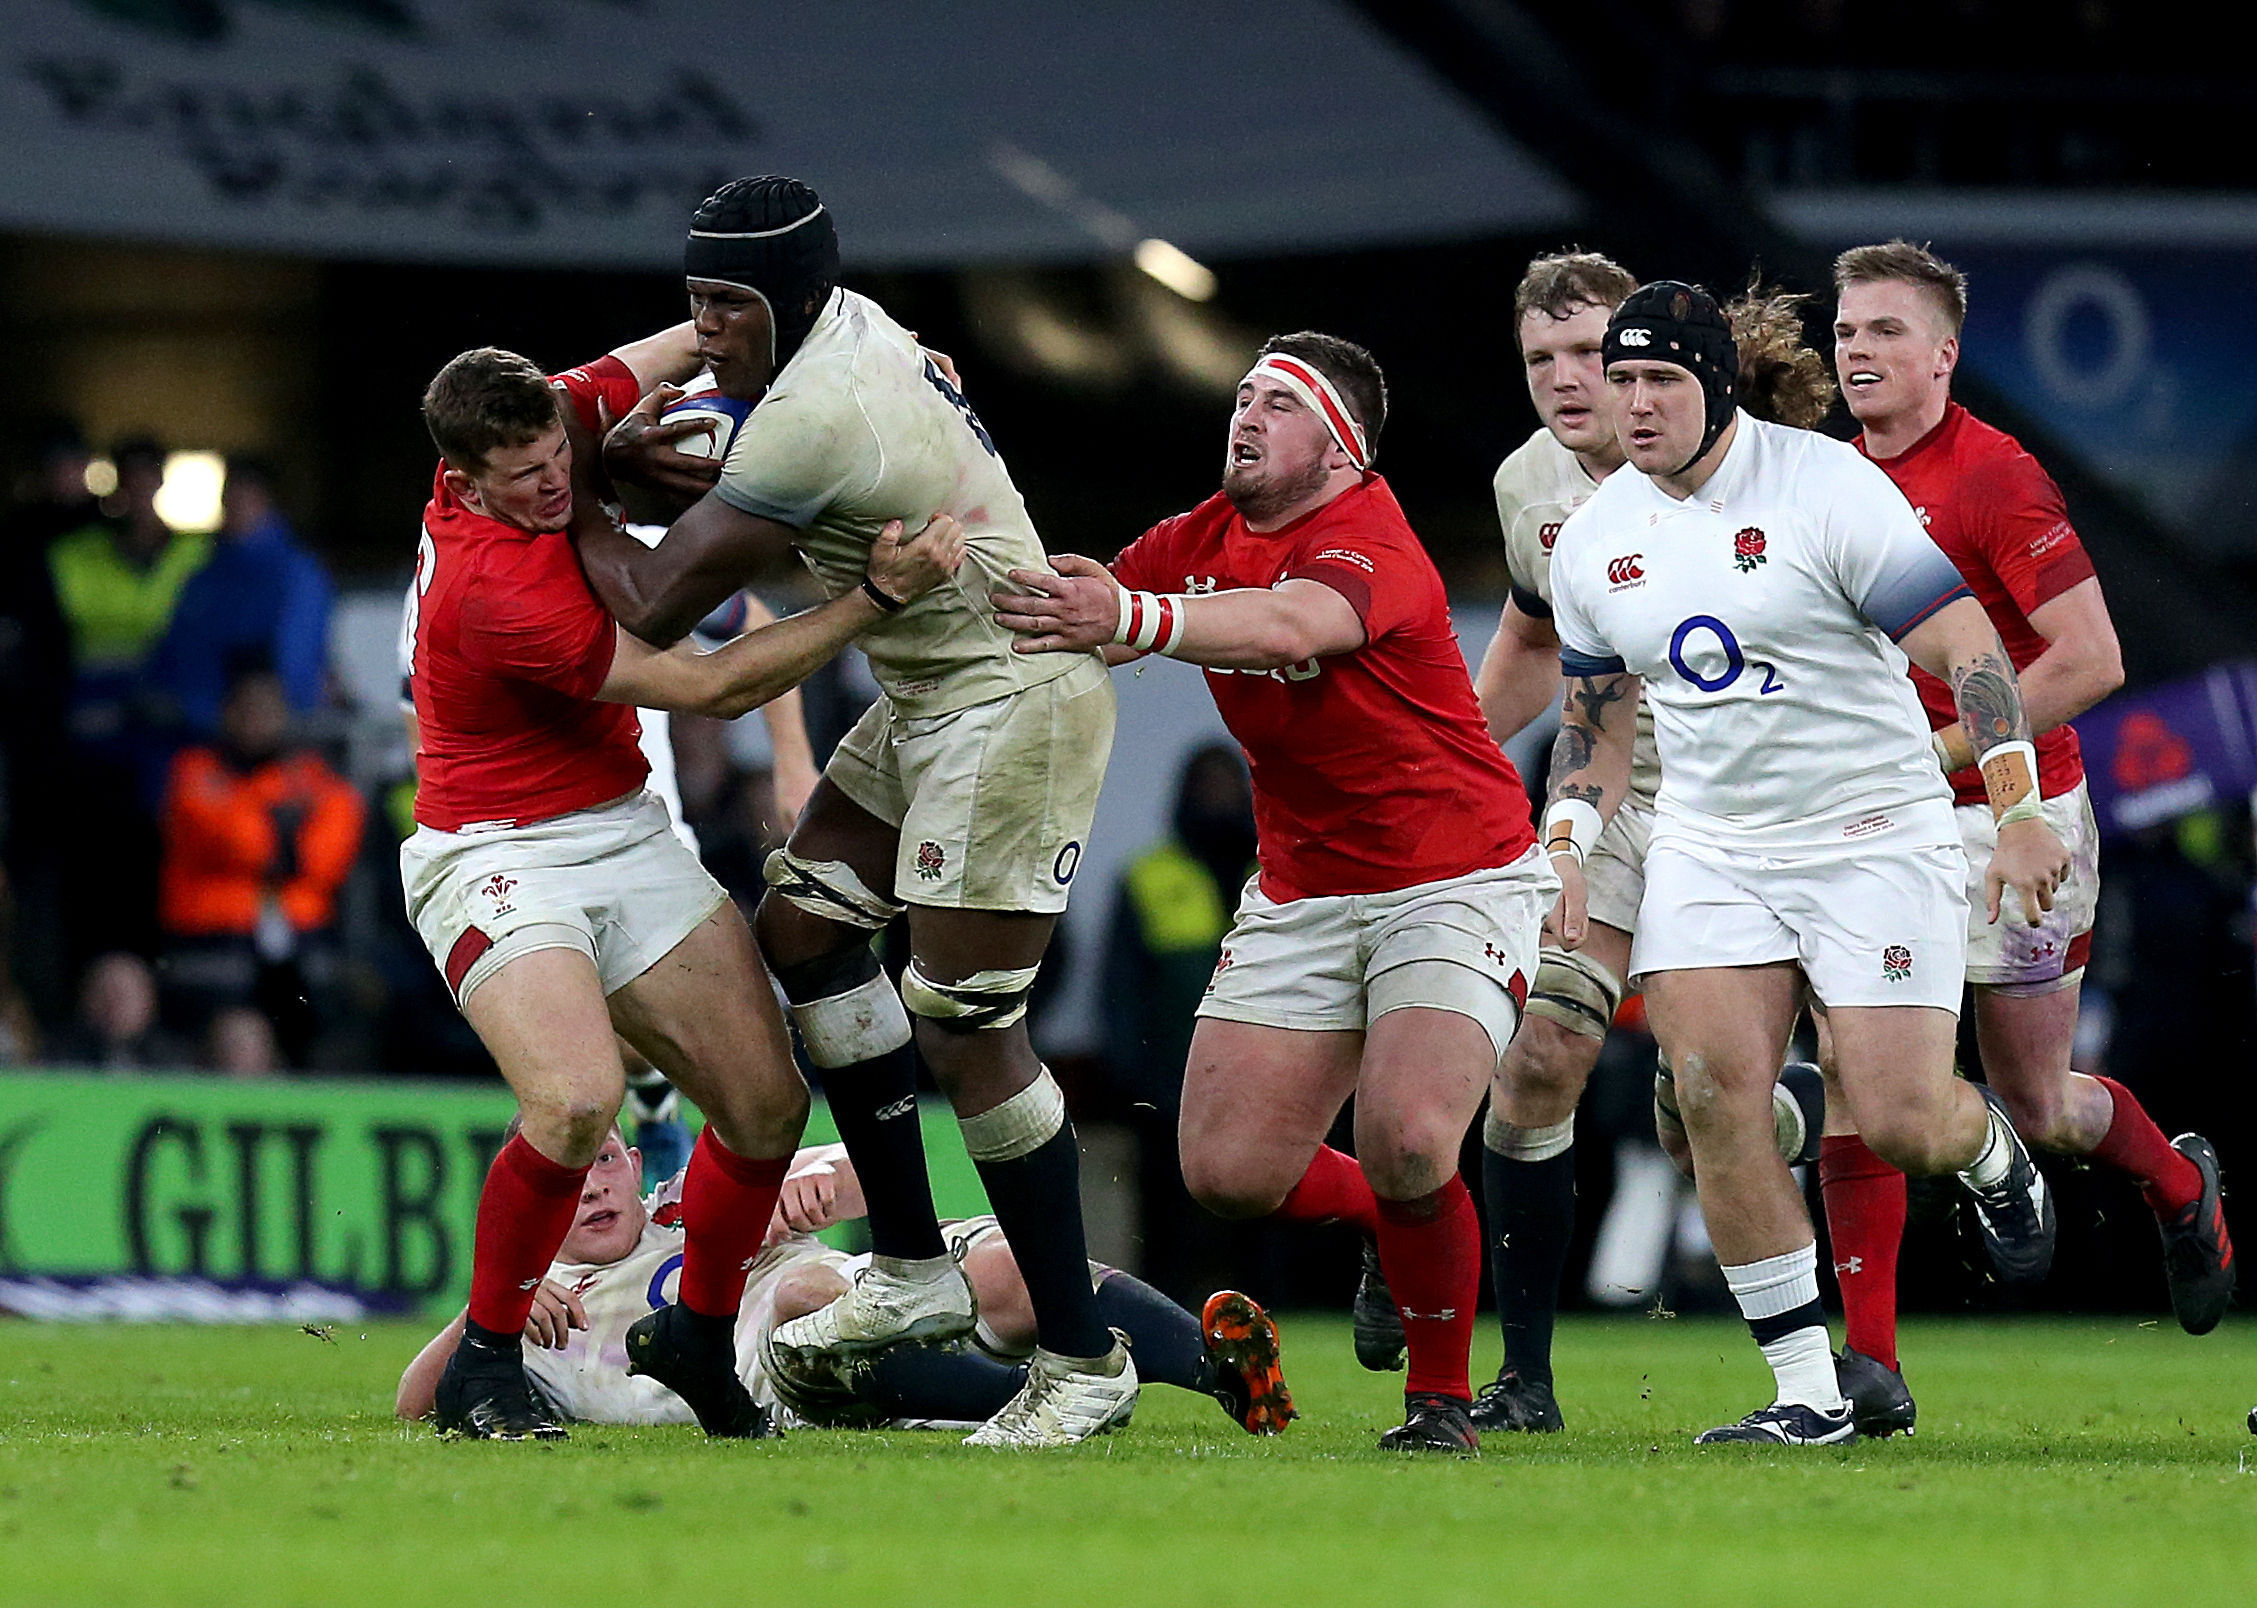 HOPEFUL: Dragons hooker Elliot Dee, pictured tackling Maro Itoje, is hoping for a first Wales start against Italy